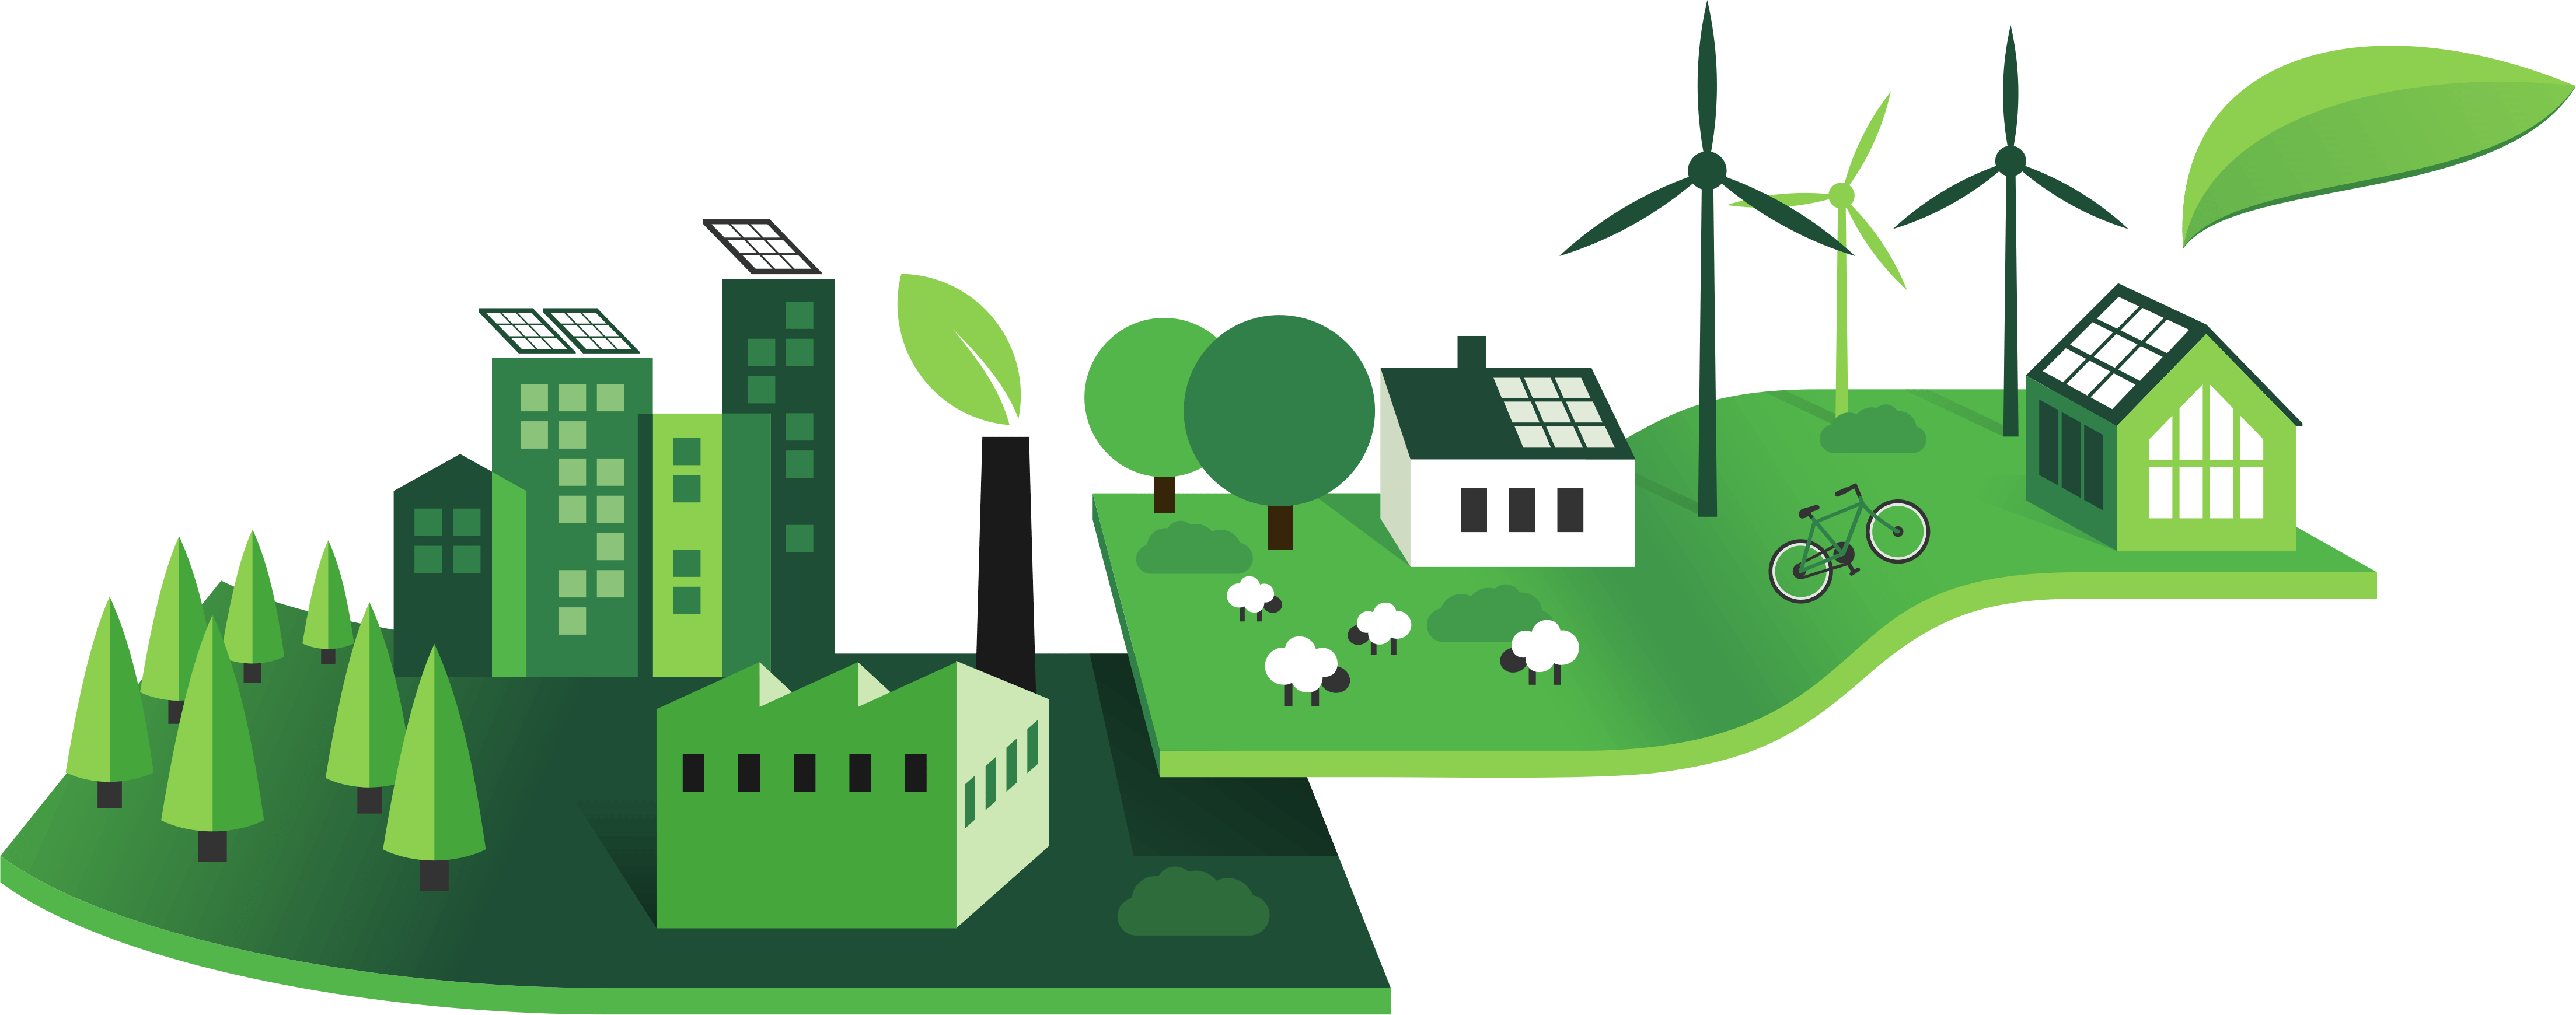 Working towards green investors. Environment clipart sustainable